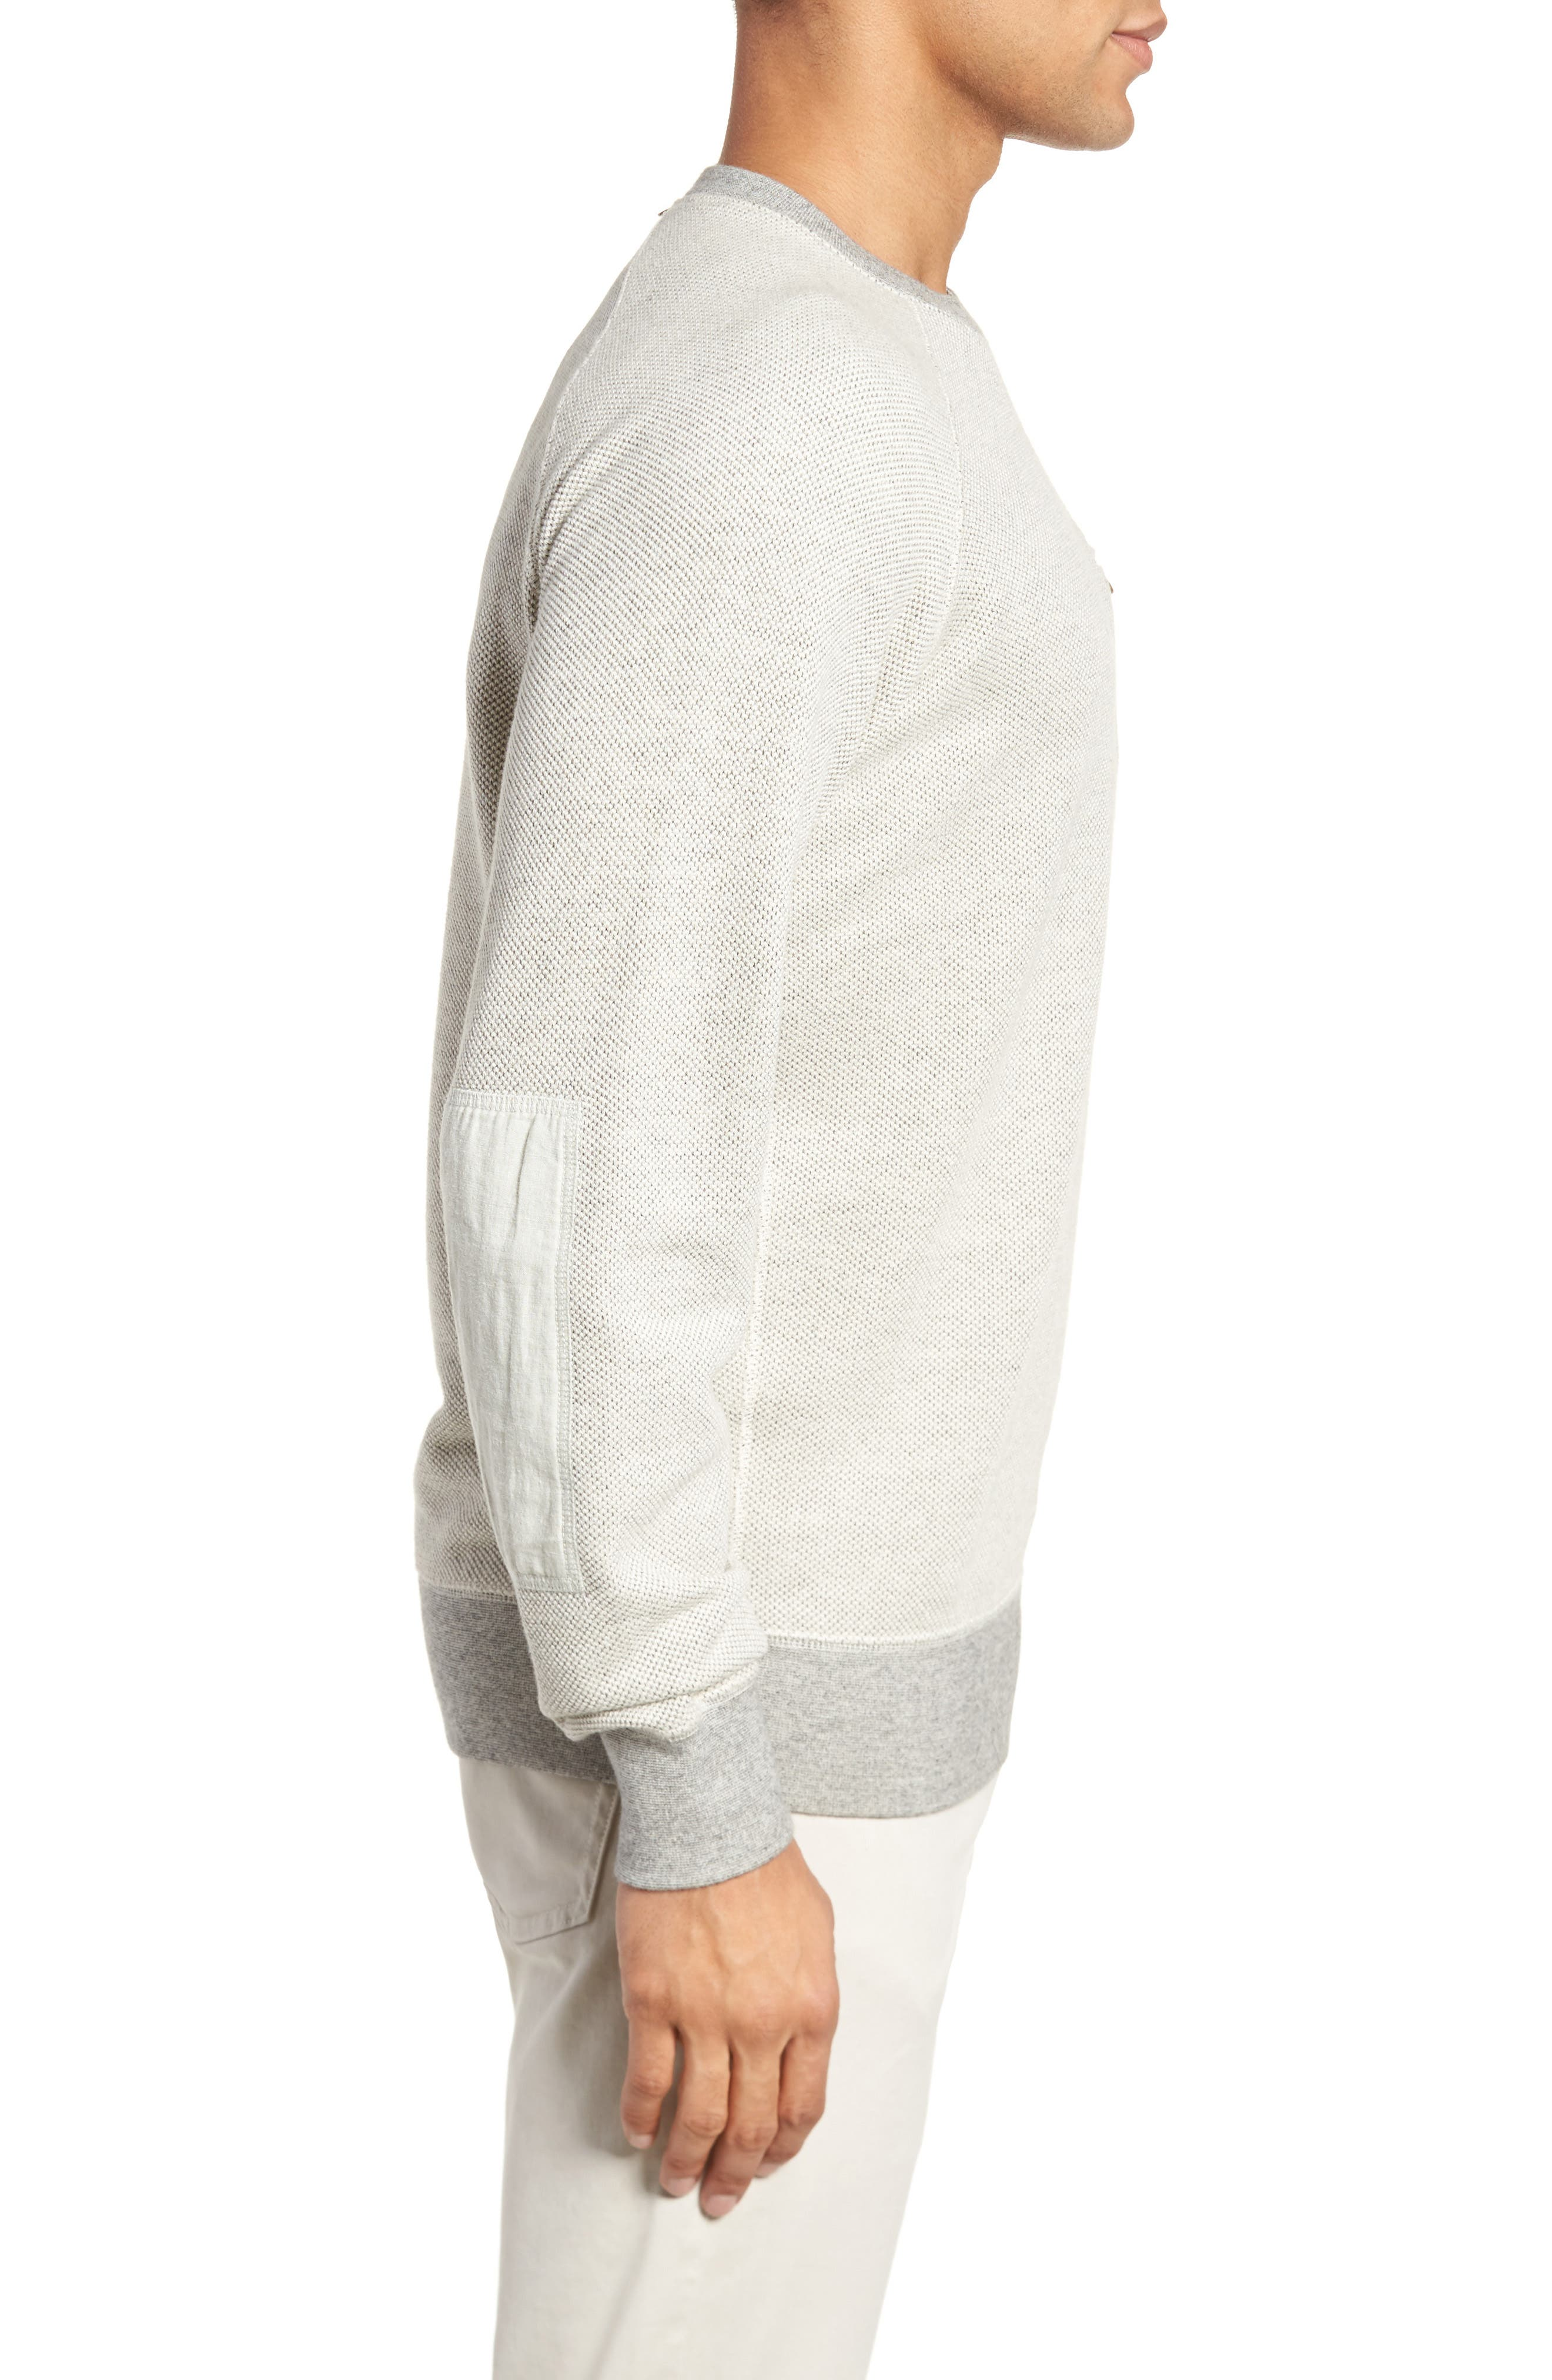 Tommy Pullover Sweatshirt,                             Alternate thumbnail 3, color,                             Light Grey